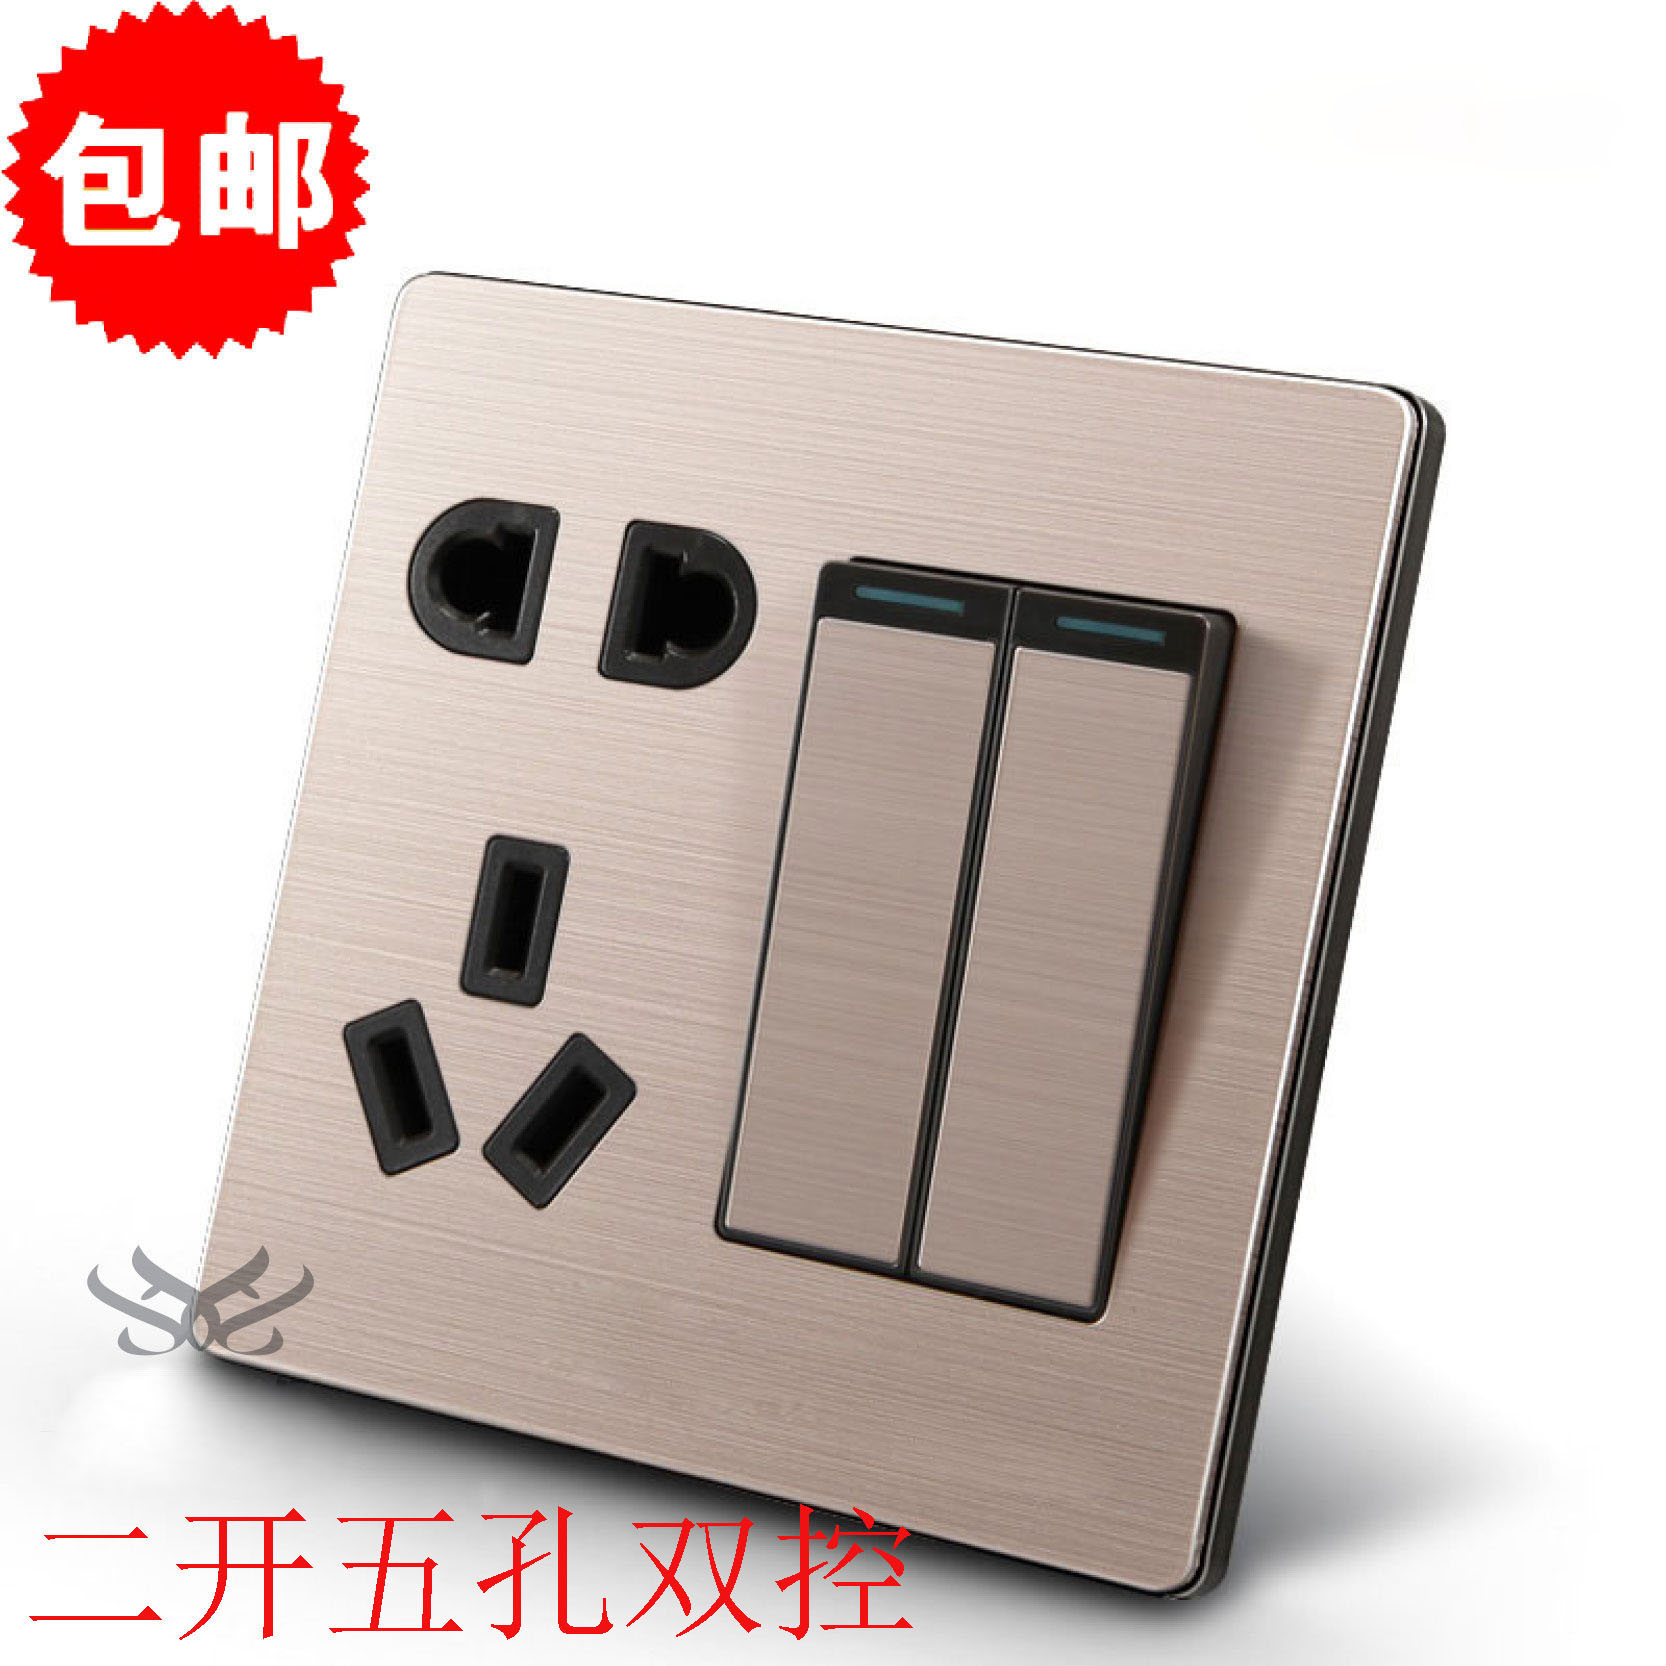 86 A2 full wire-drawing stainless steel rose gold Two open five-hole socket two-bit switch dual-control five-hole socket